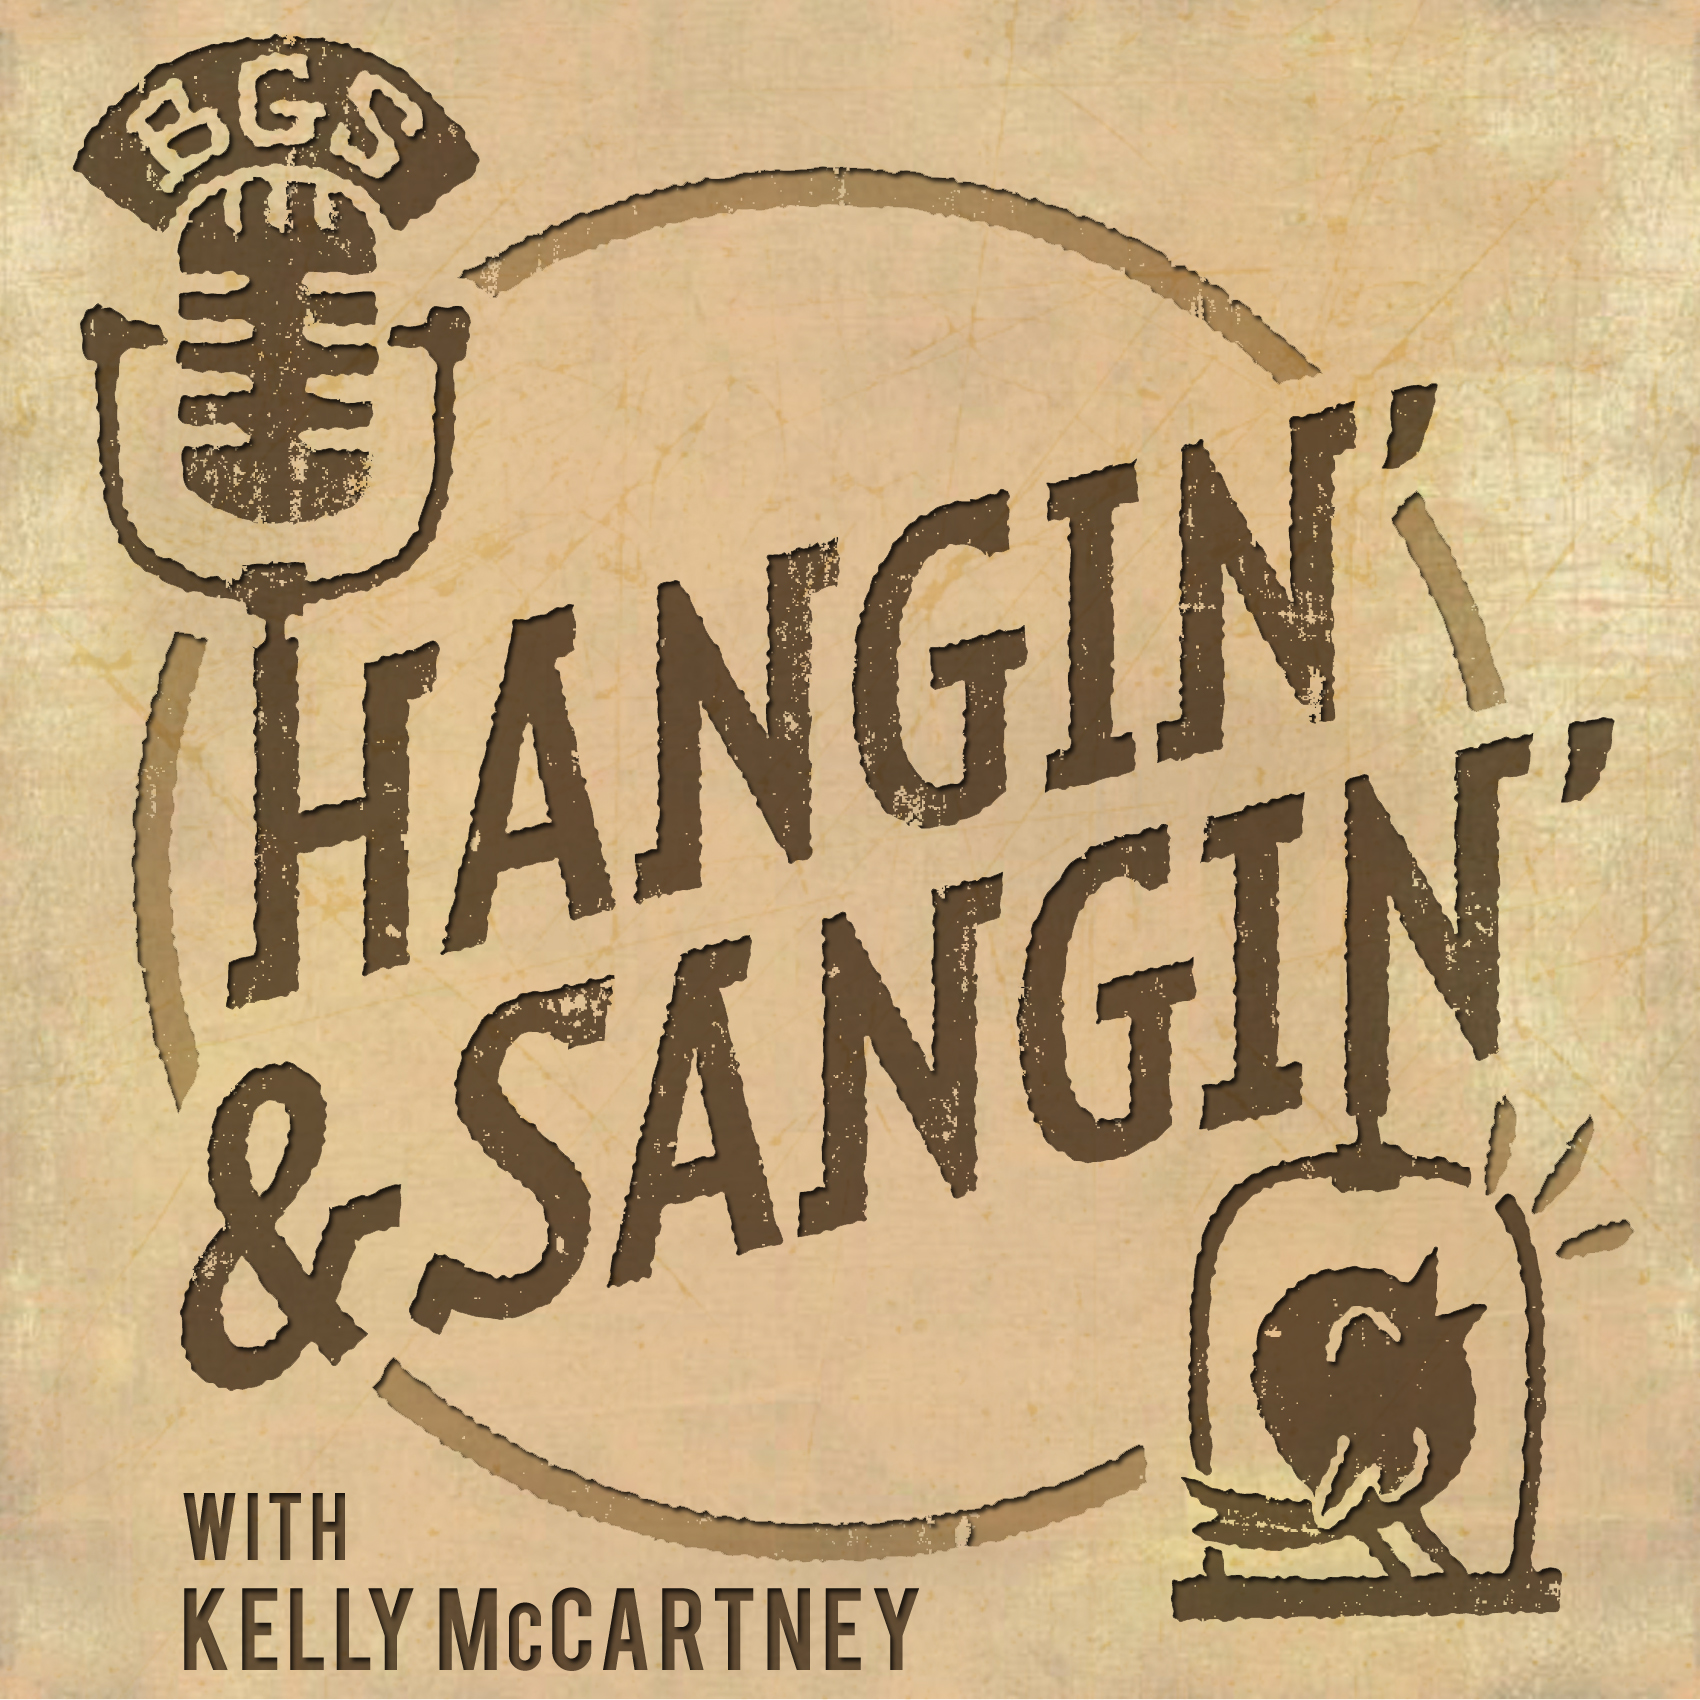 ANNOUNCING: Two New Ways to Hang & Sang